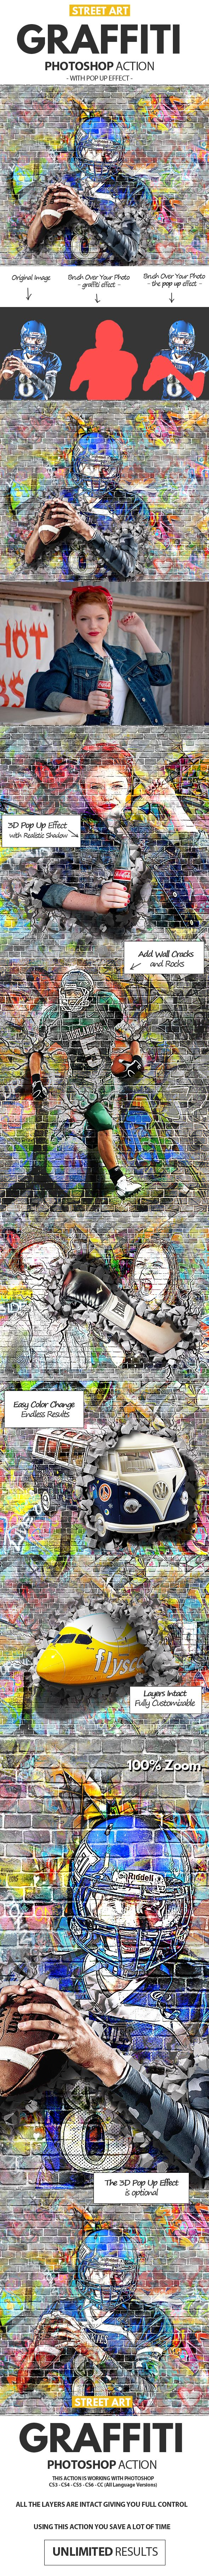 Graffiti Effect with Pop Up Photoshop Action - Photo Effects Actions